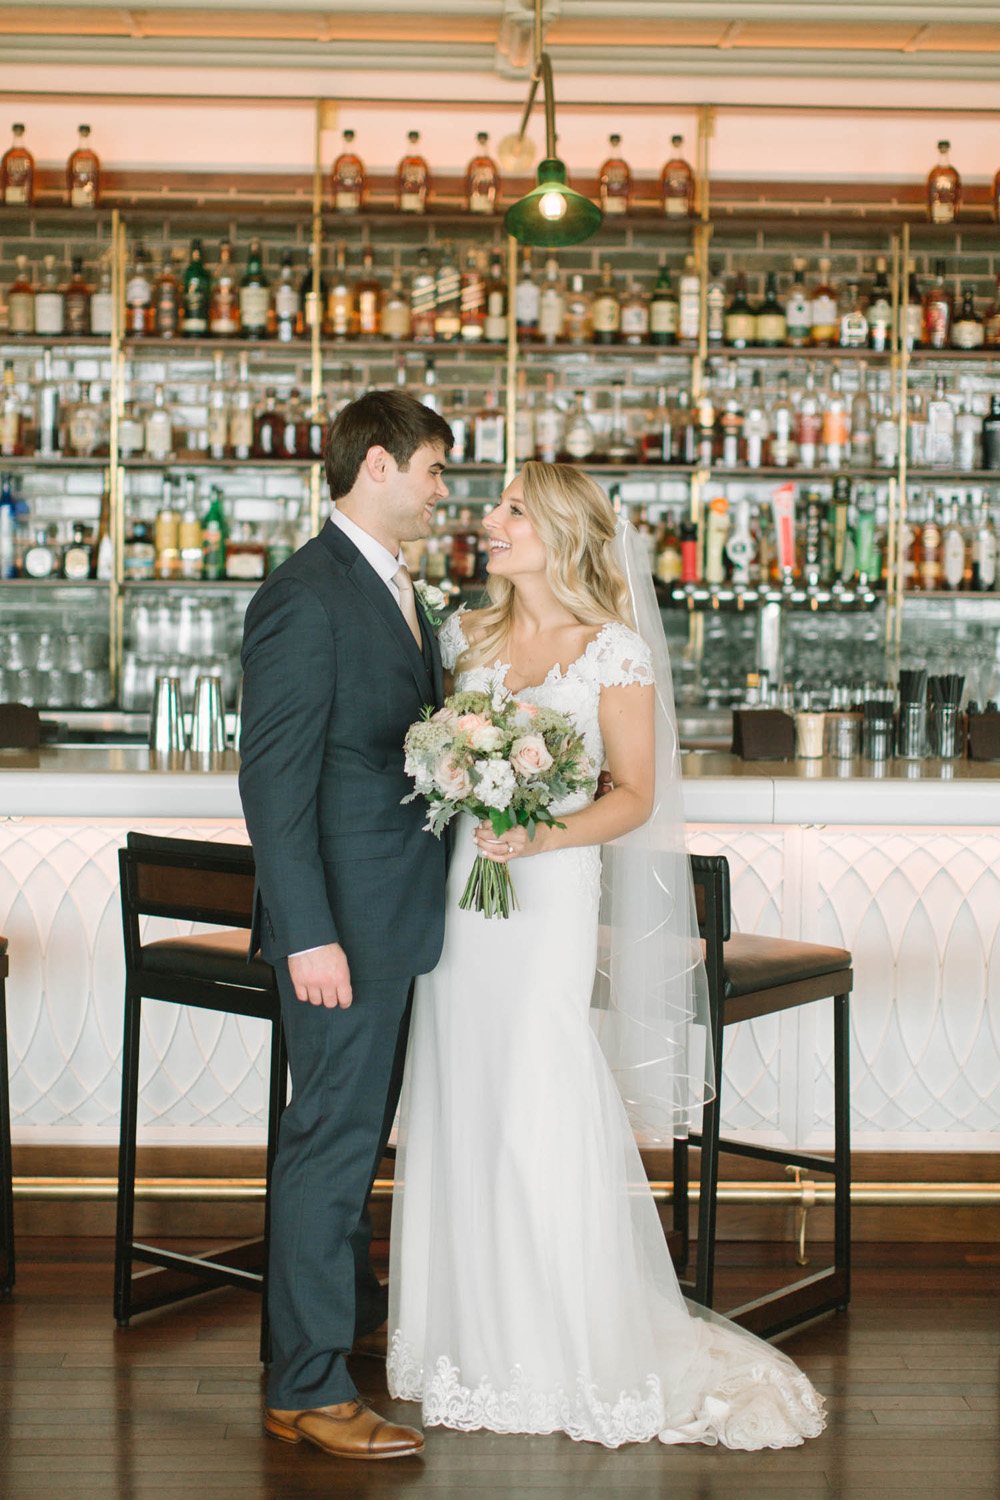 kateweinsteinphoto_kimpton_milwaukee_the_atrium_wedding-132.jpg